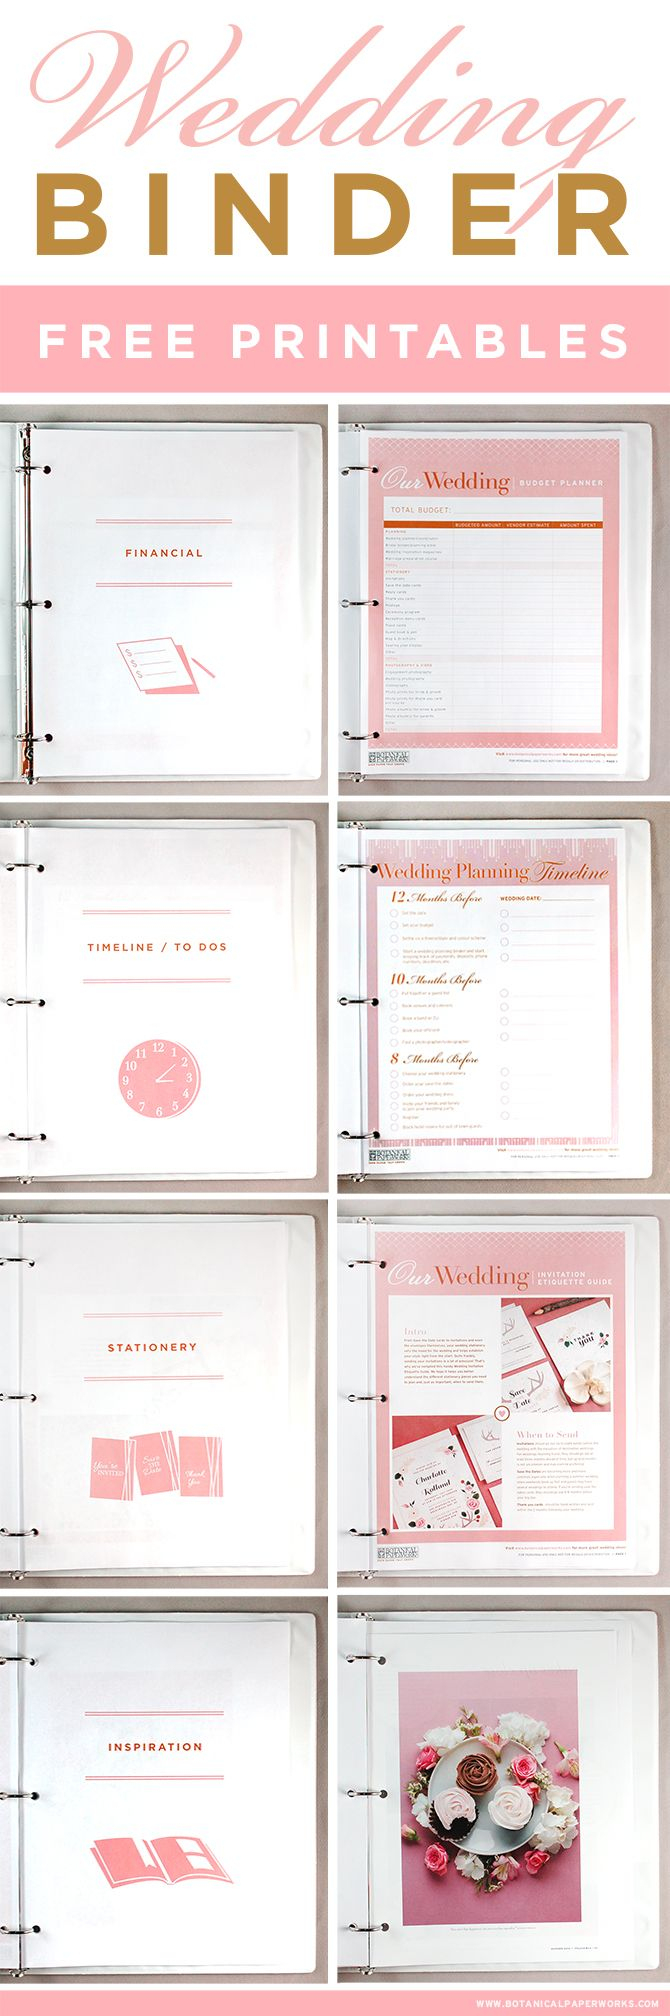 Wedding Planner Guide Free Printable – Wedding Planner Template - Free Printable Wedding Planner Forms